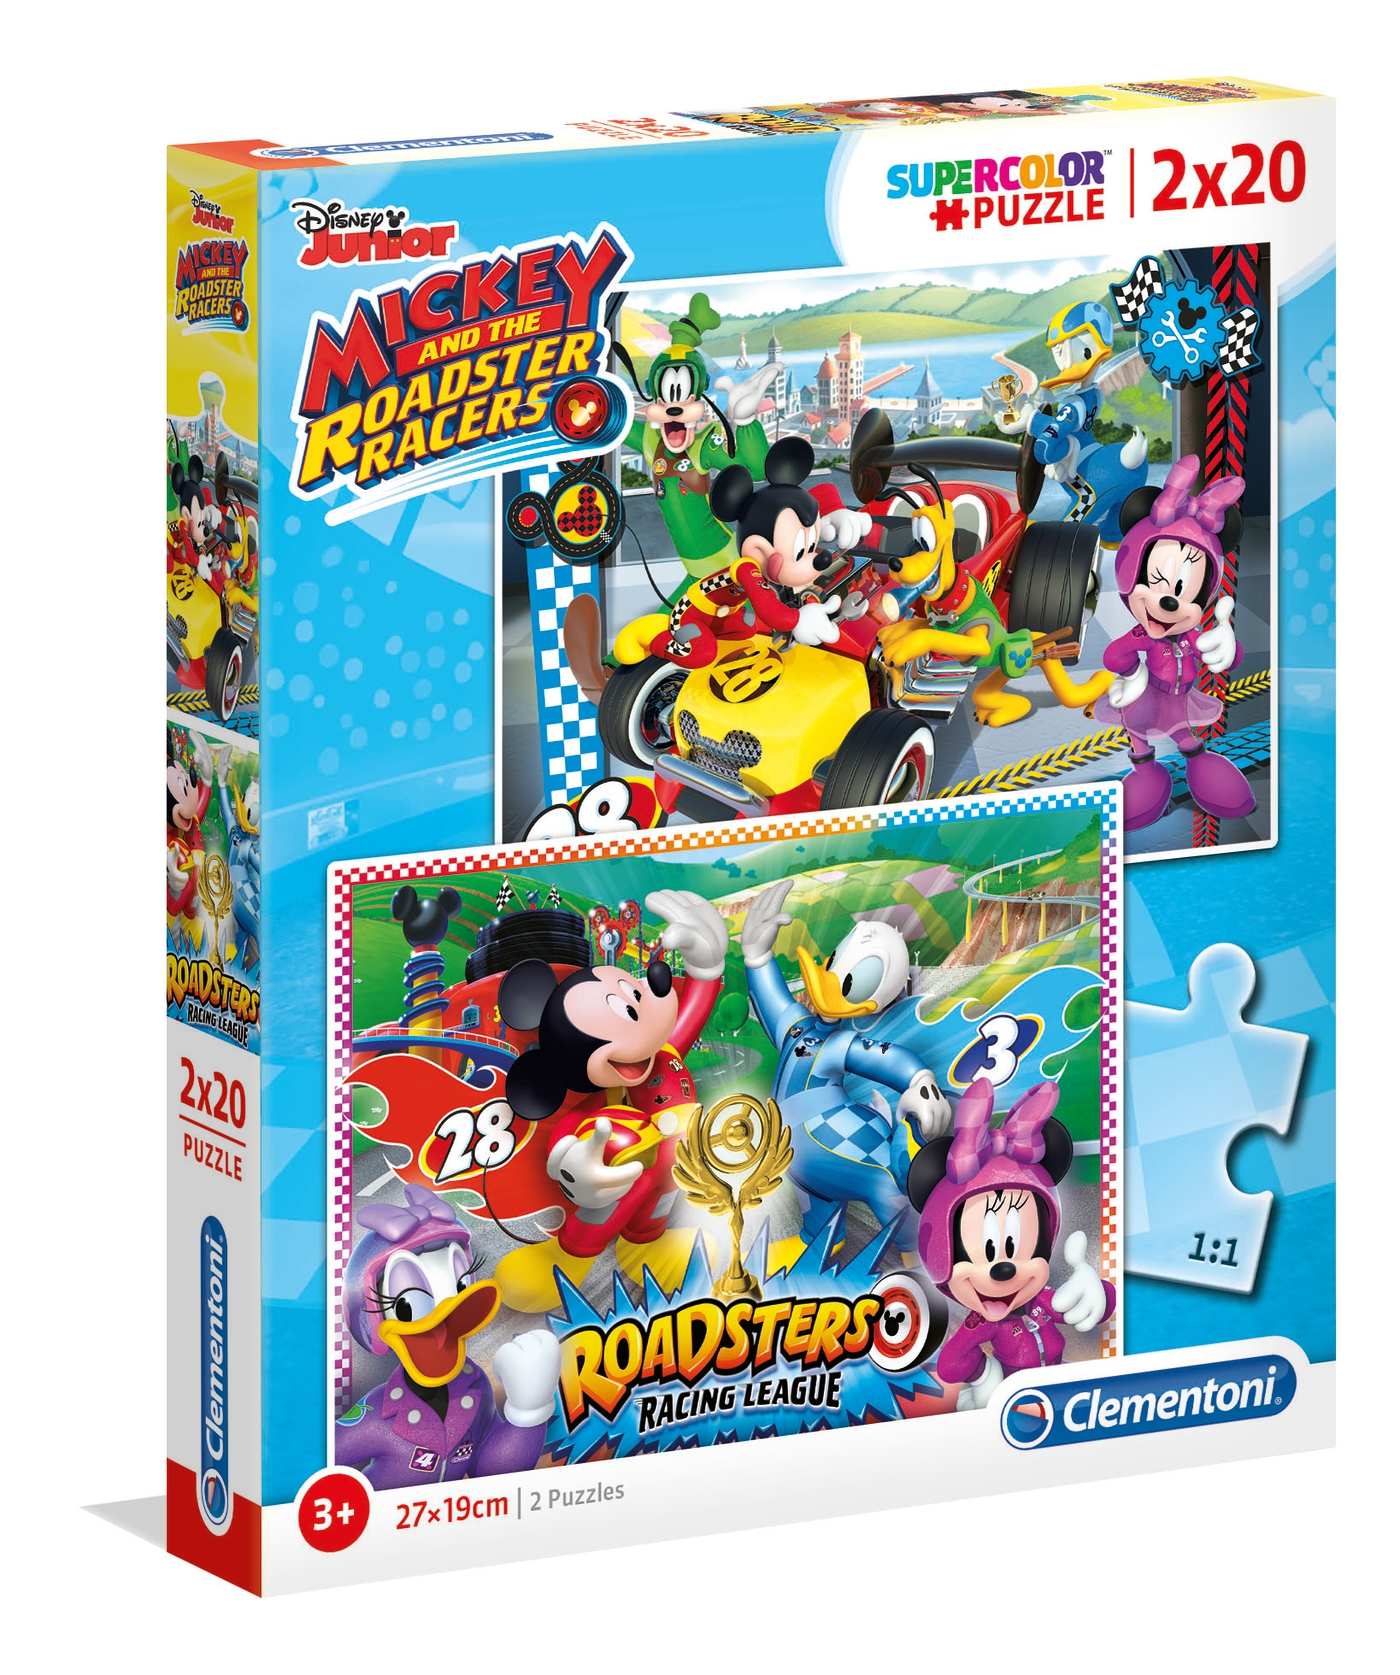 PUZZLE 2X20 MICKEY ROADSTER RACERS 07034